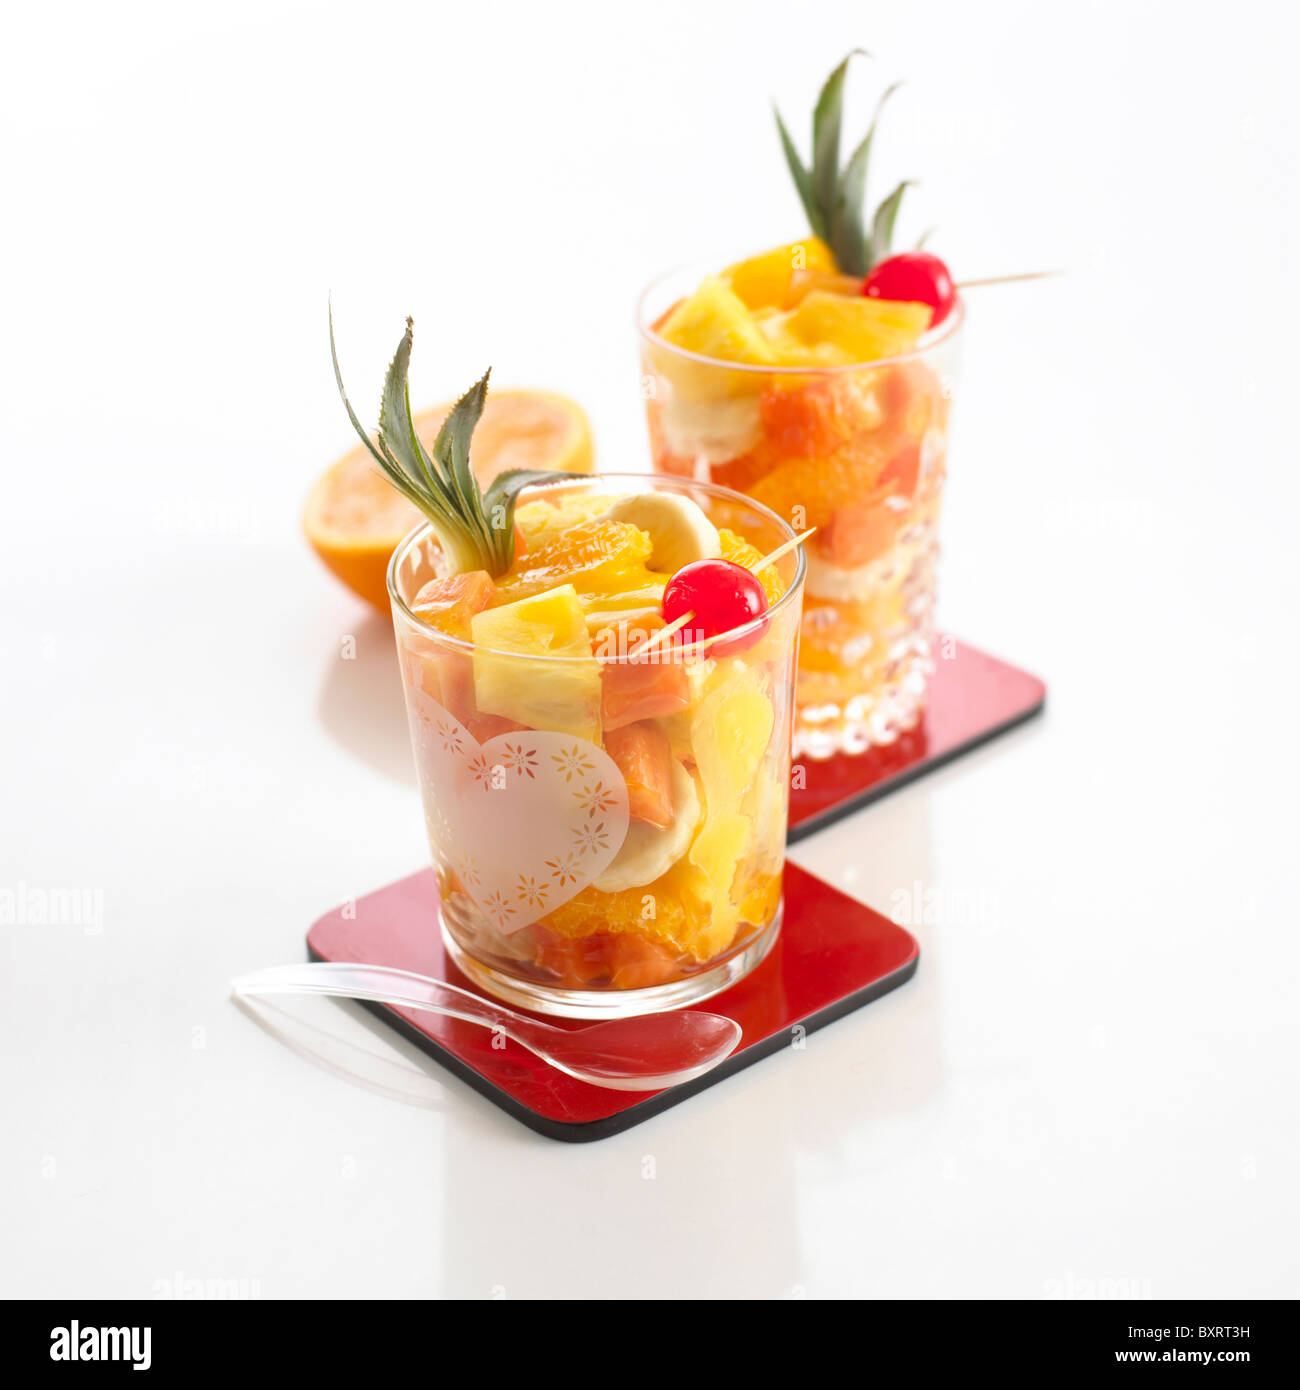 Images Of Fresh Fruit Cocktail